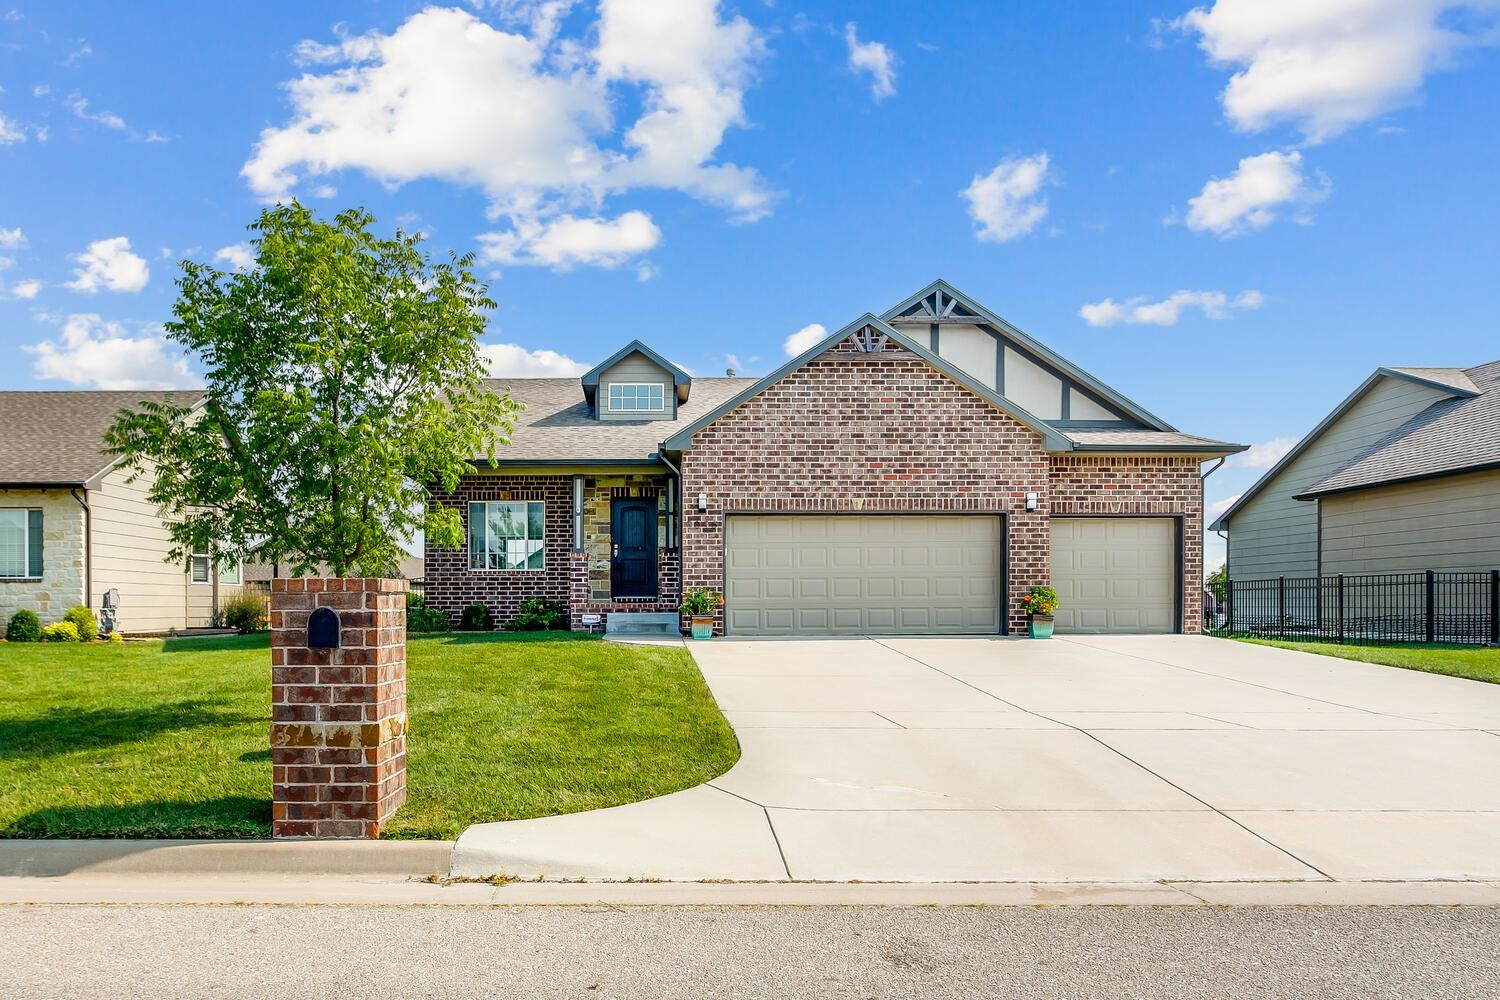 Beautiful home in Bel Aire. Open floor plan and vaulted ceilings.